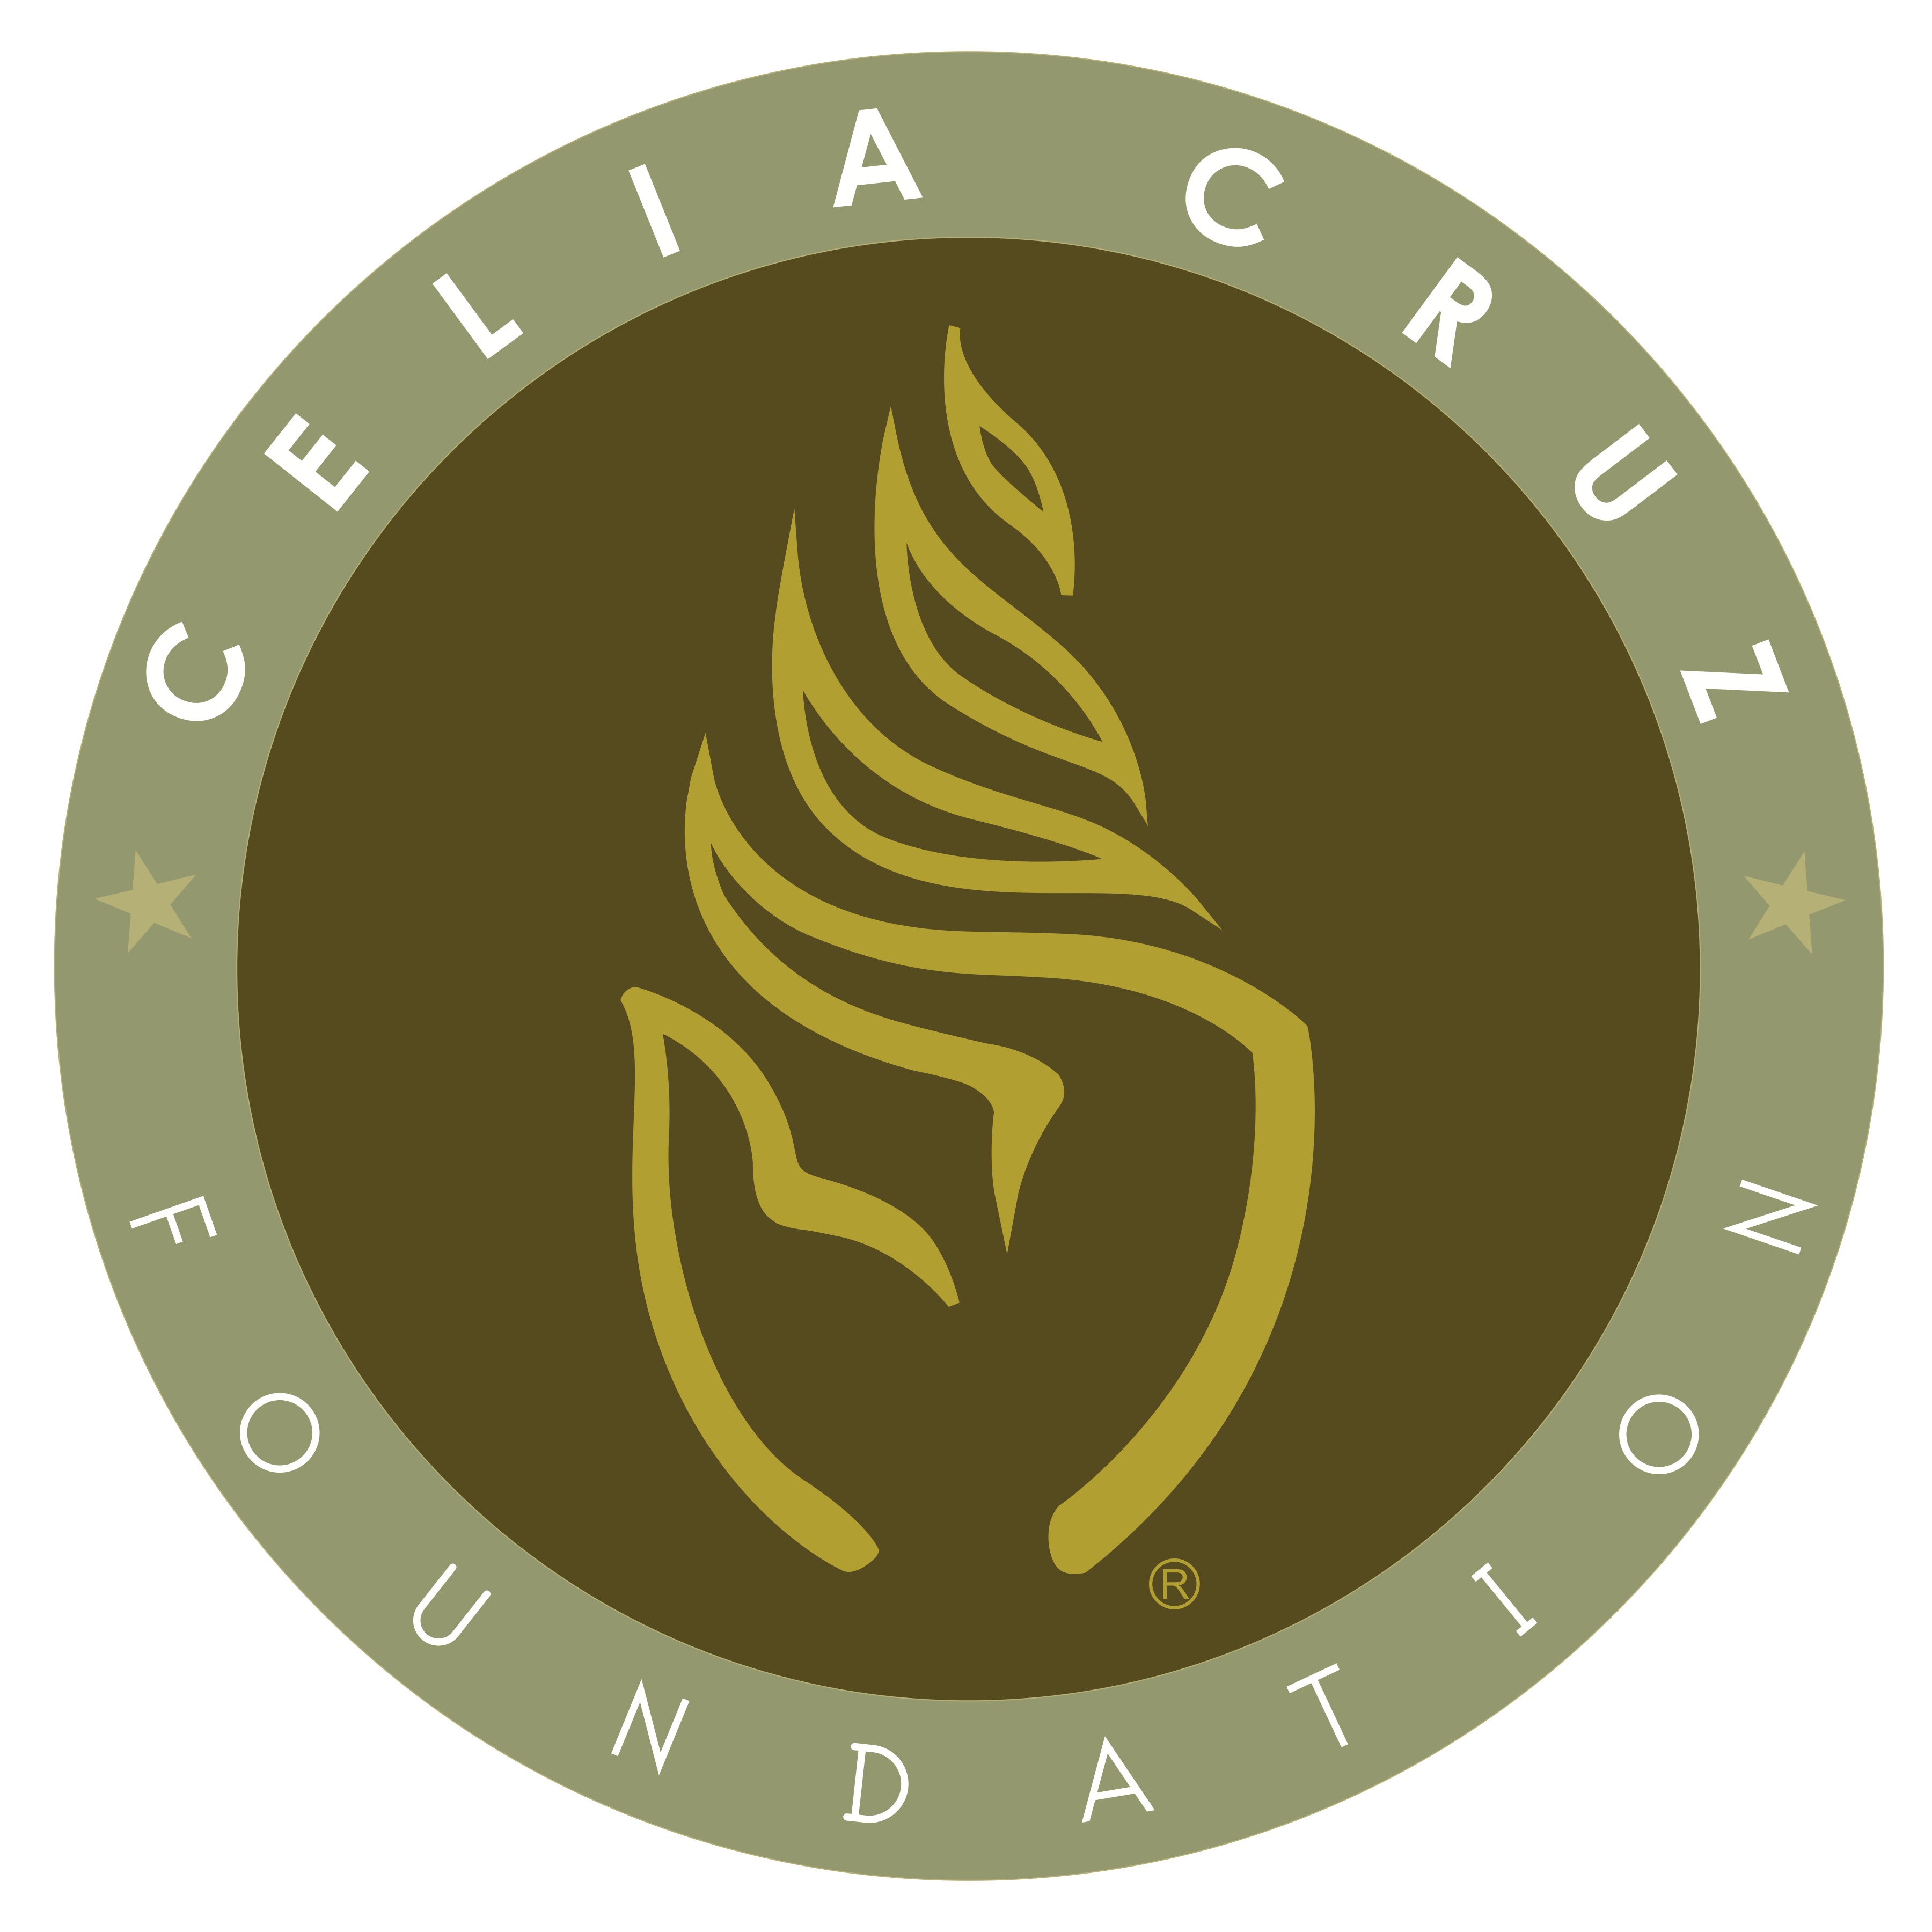 Celia Cruz Foundation Manager of Celia Cruz